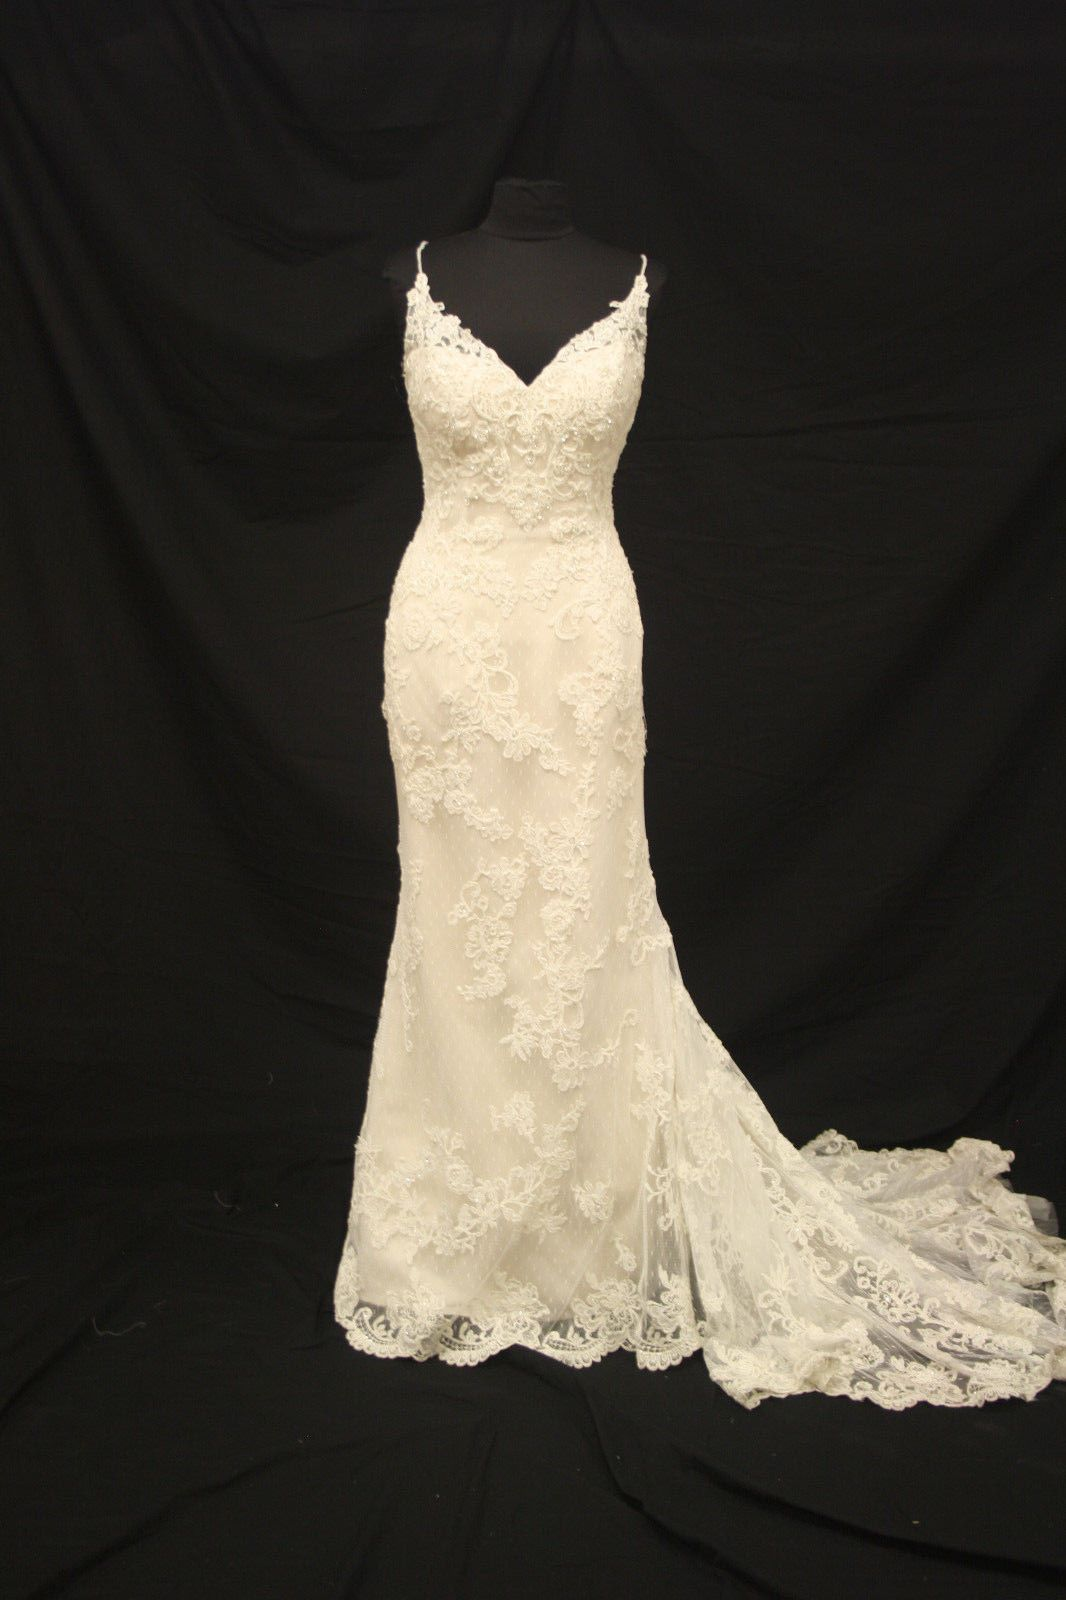 Awesome amazing casablanca wedding gown bridal dress sz